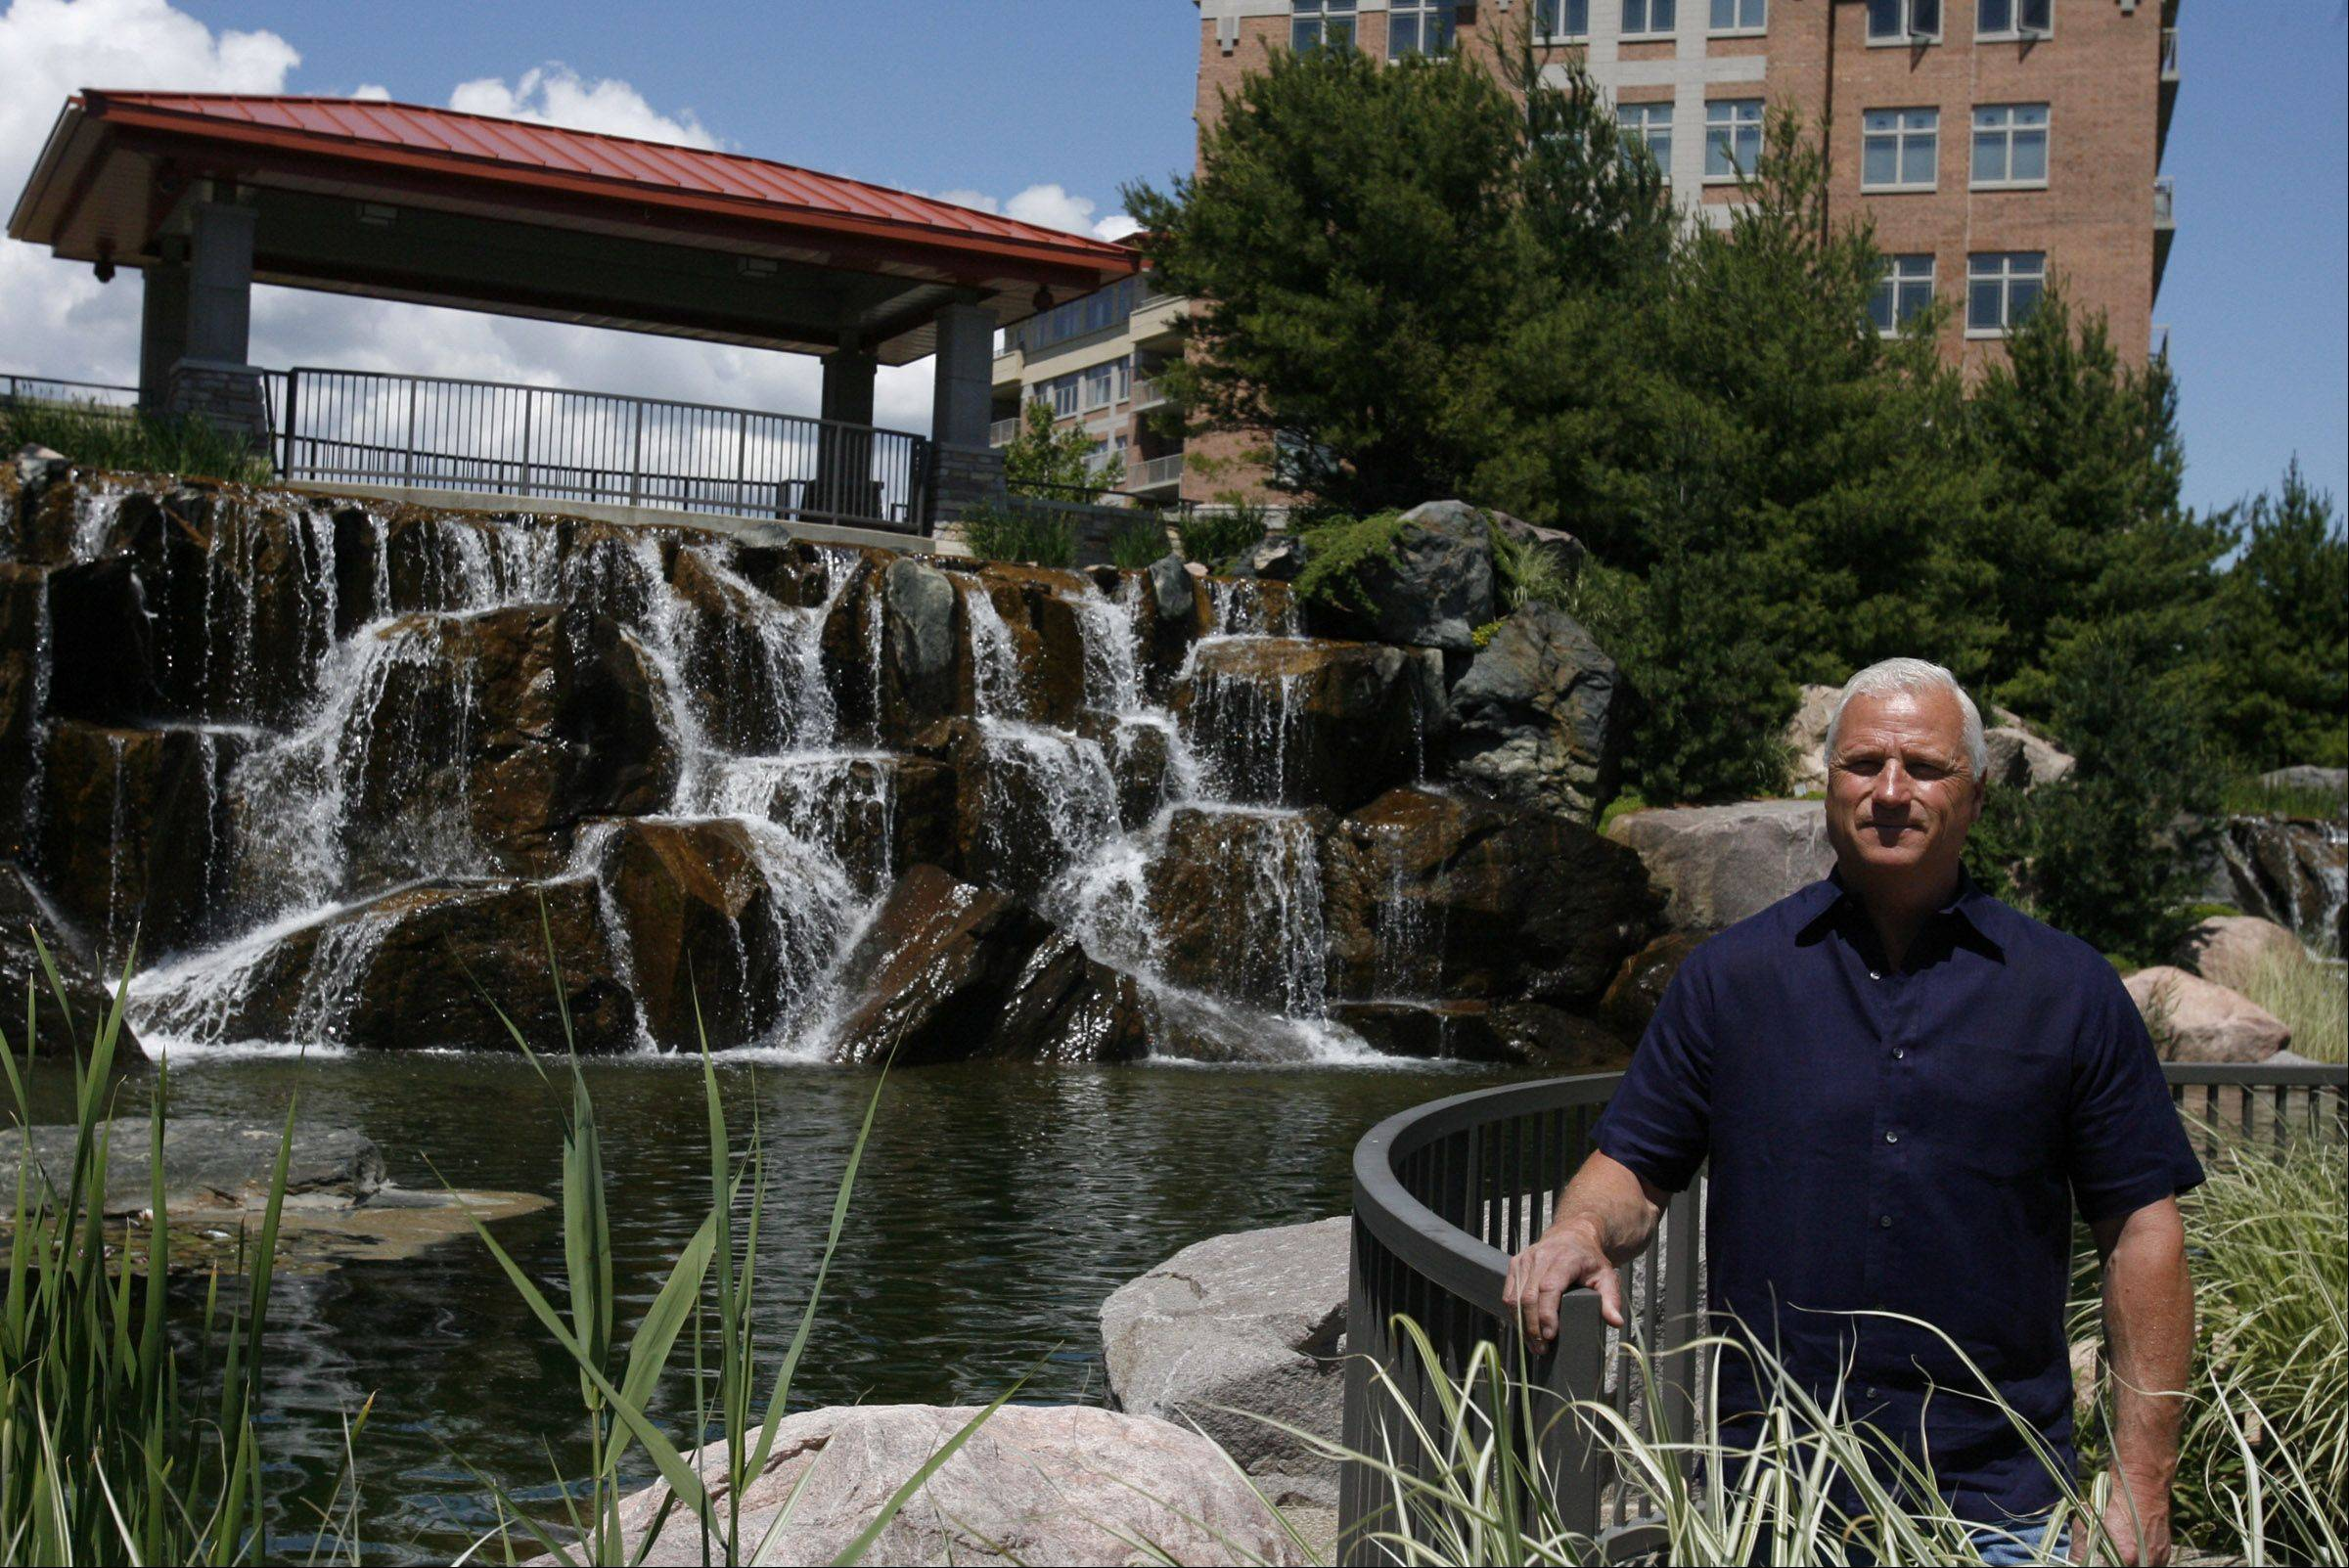 Mark Smith said an aquifer on a once swampy piece of land now feeds the waterfall at Prairie Park Condominiums in Wheeling.